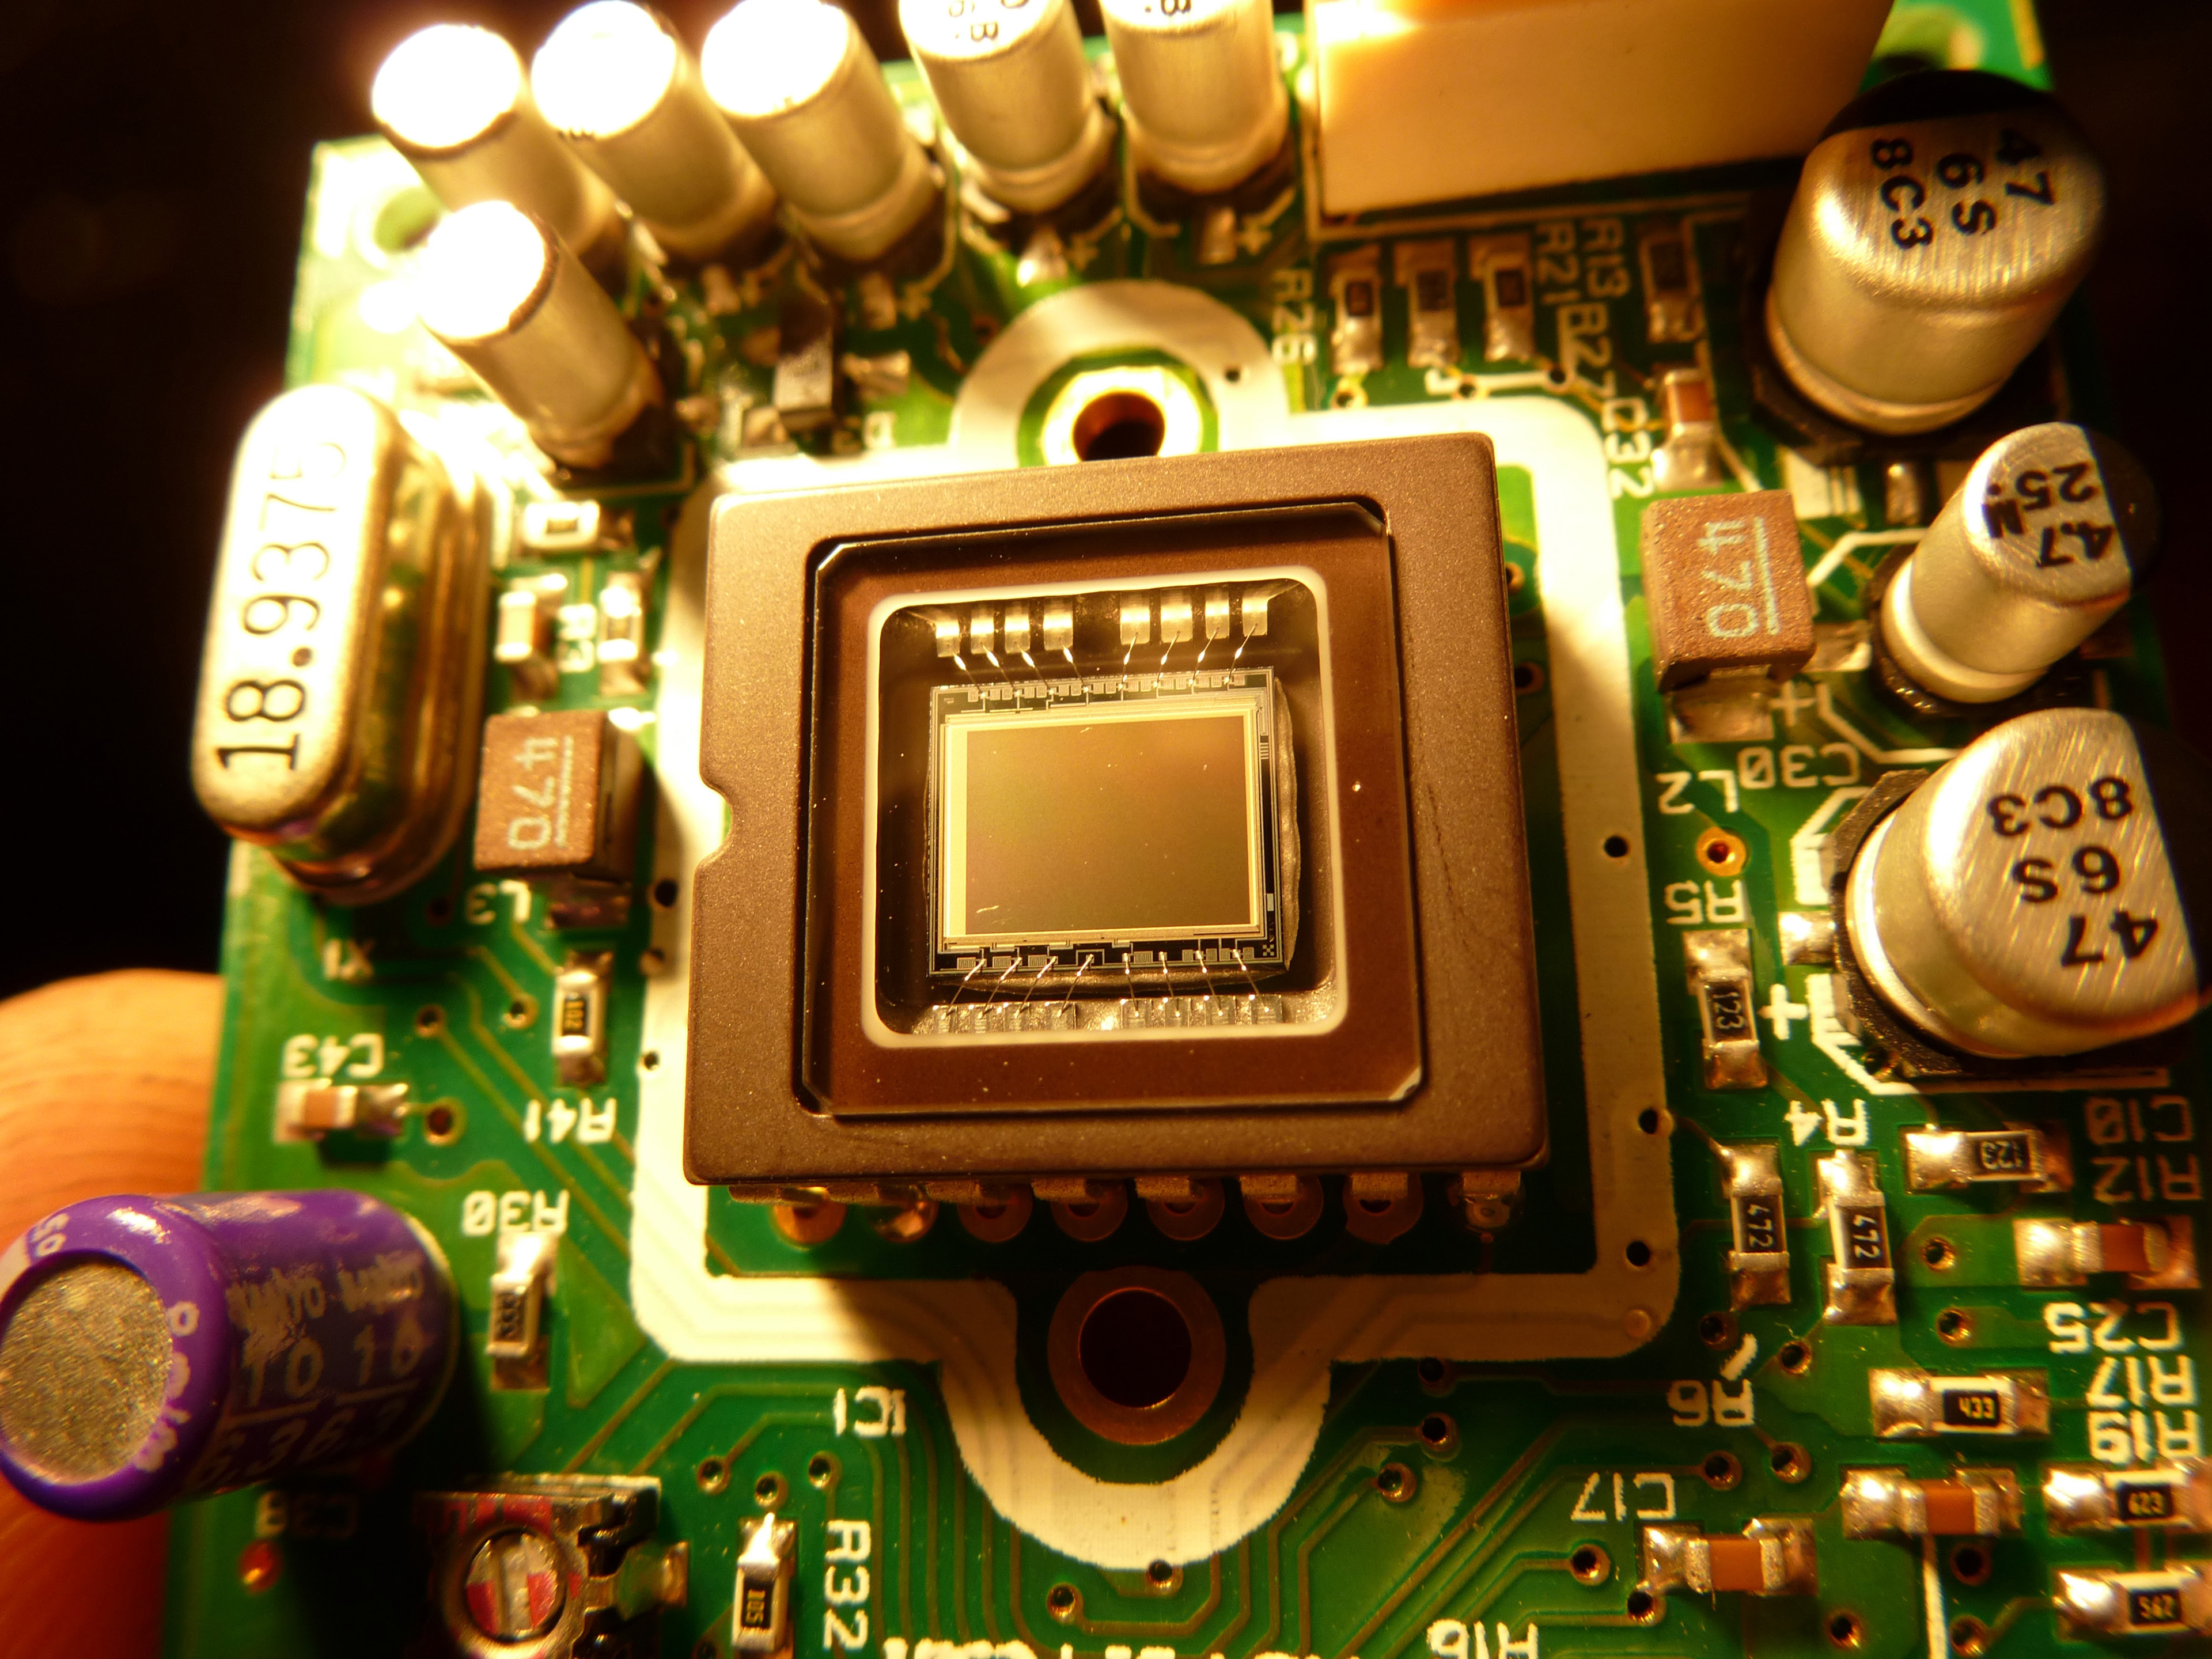 a digital video camera sensor chip and surrounding electronic components